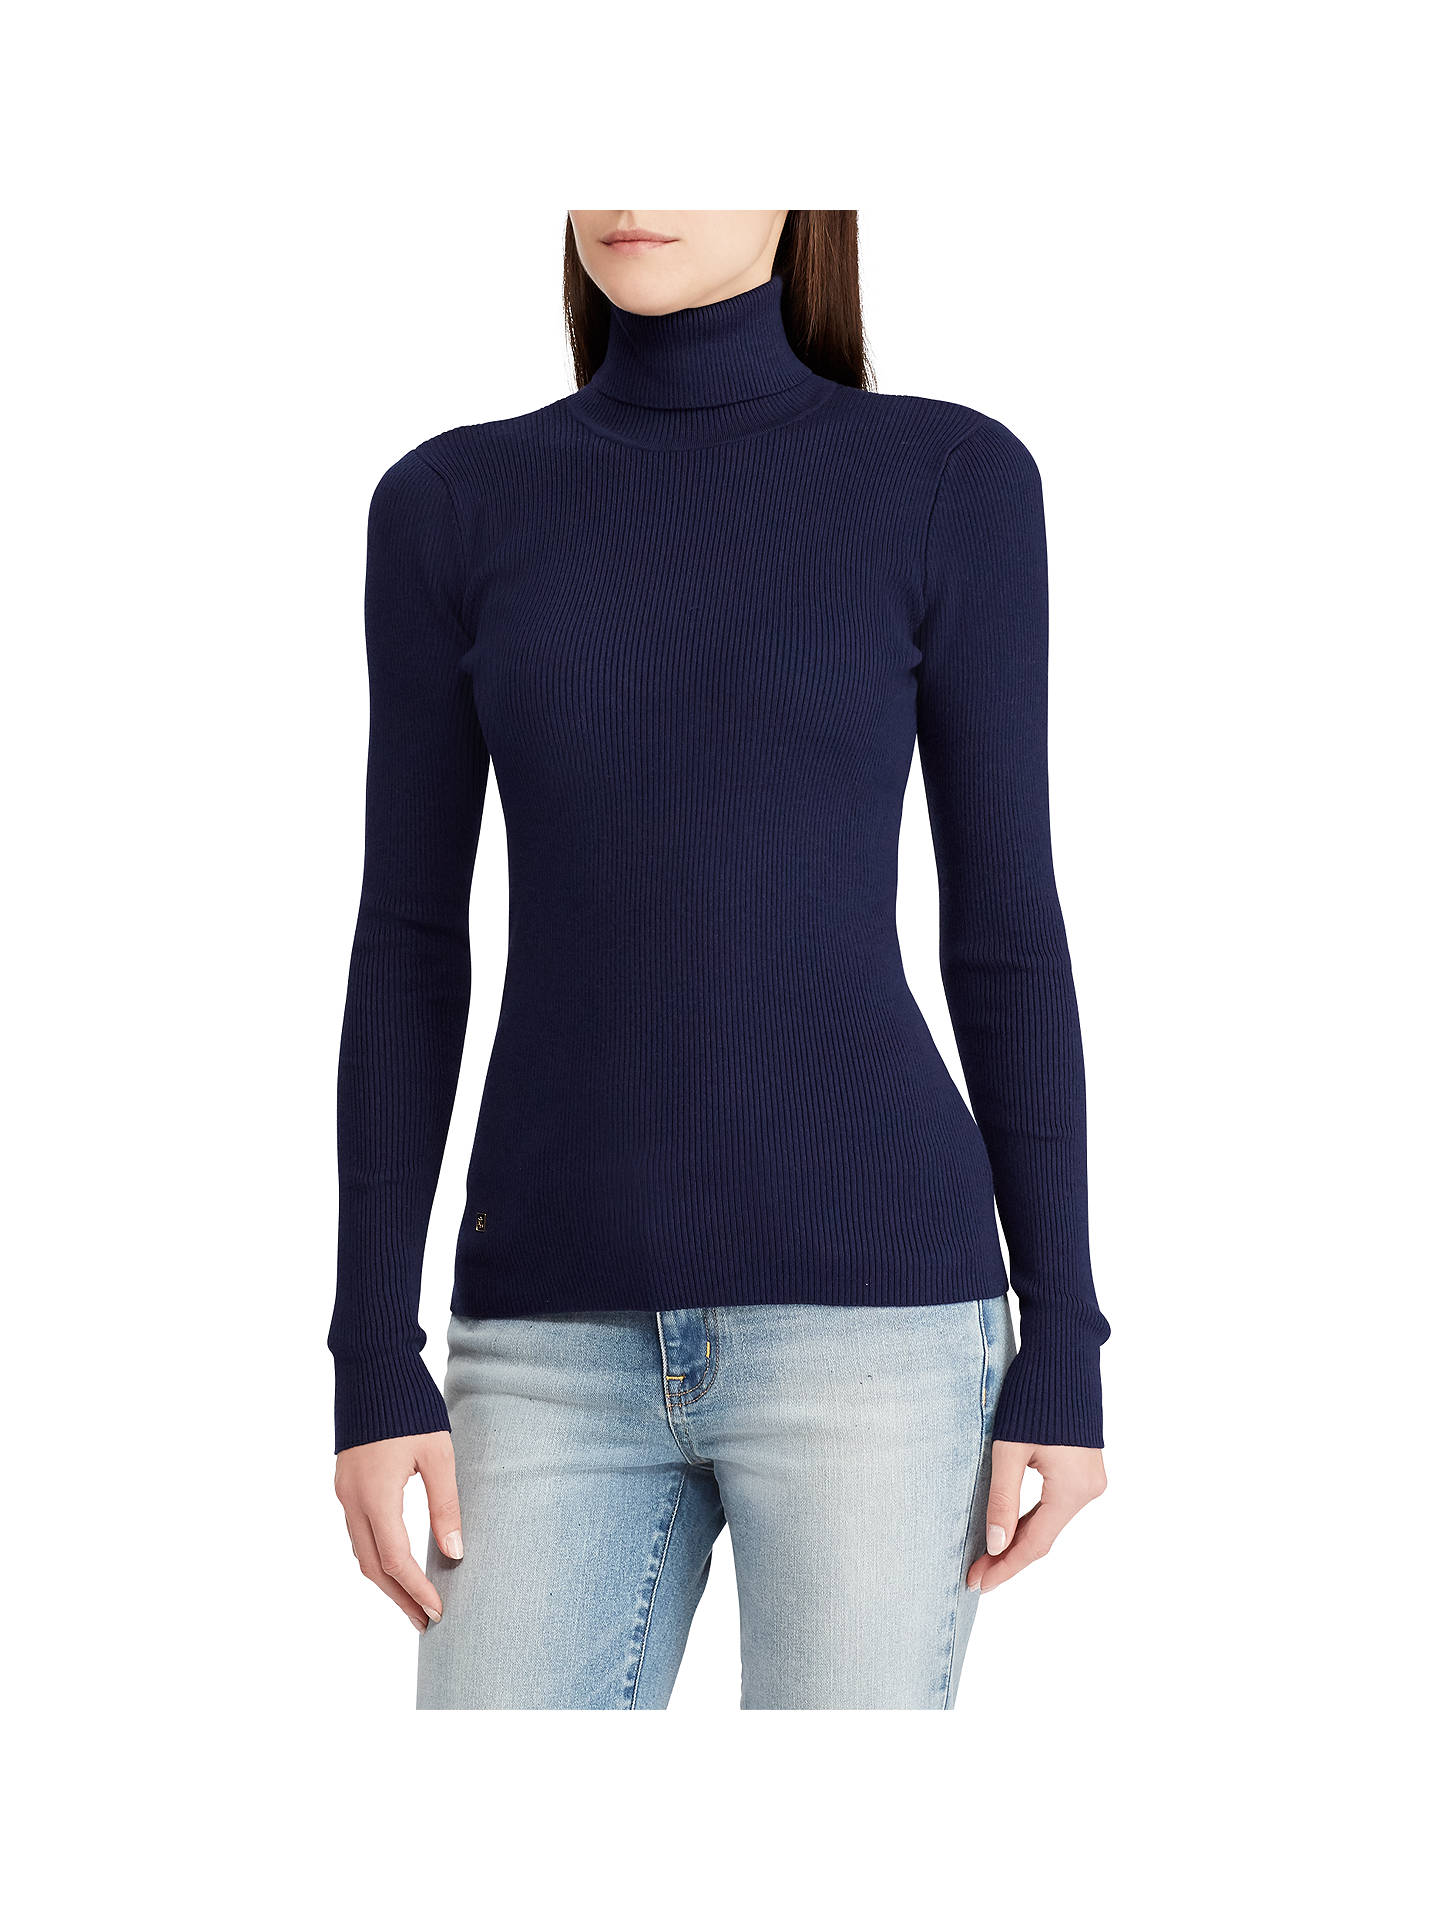 b67cbf4b6df9d Buy Lauren Ralph Lauren Amanda Turtleneck Sweater